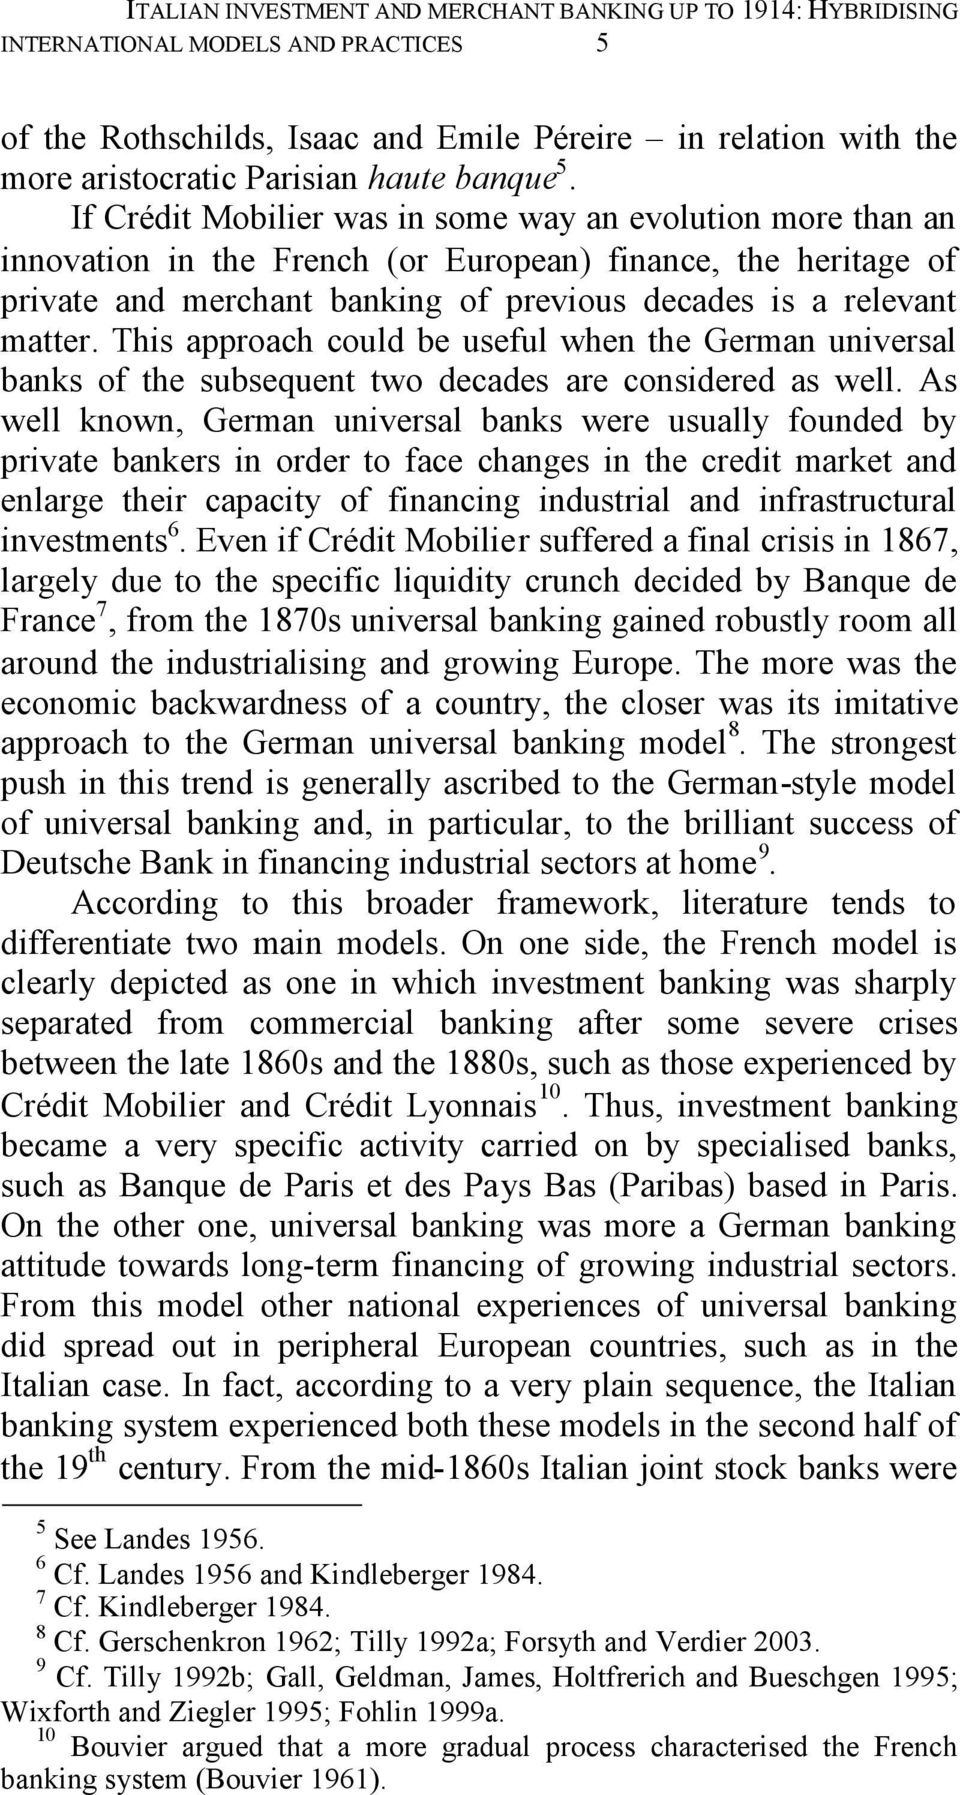 If Crédit Mobilier was in some way an evolution more than an innovation in the French (or European) finance, the heritage of private and merchant banking of previous decades is a relevant matter.